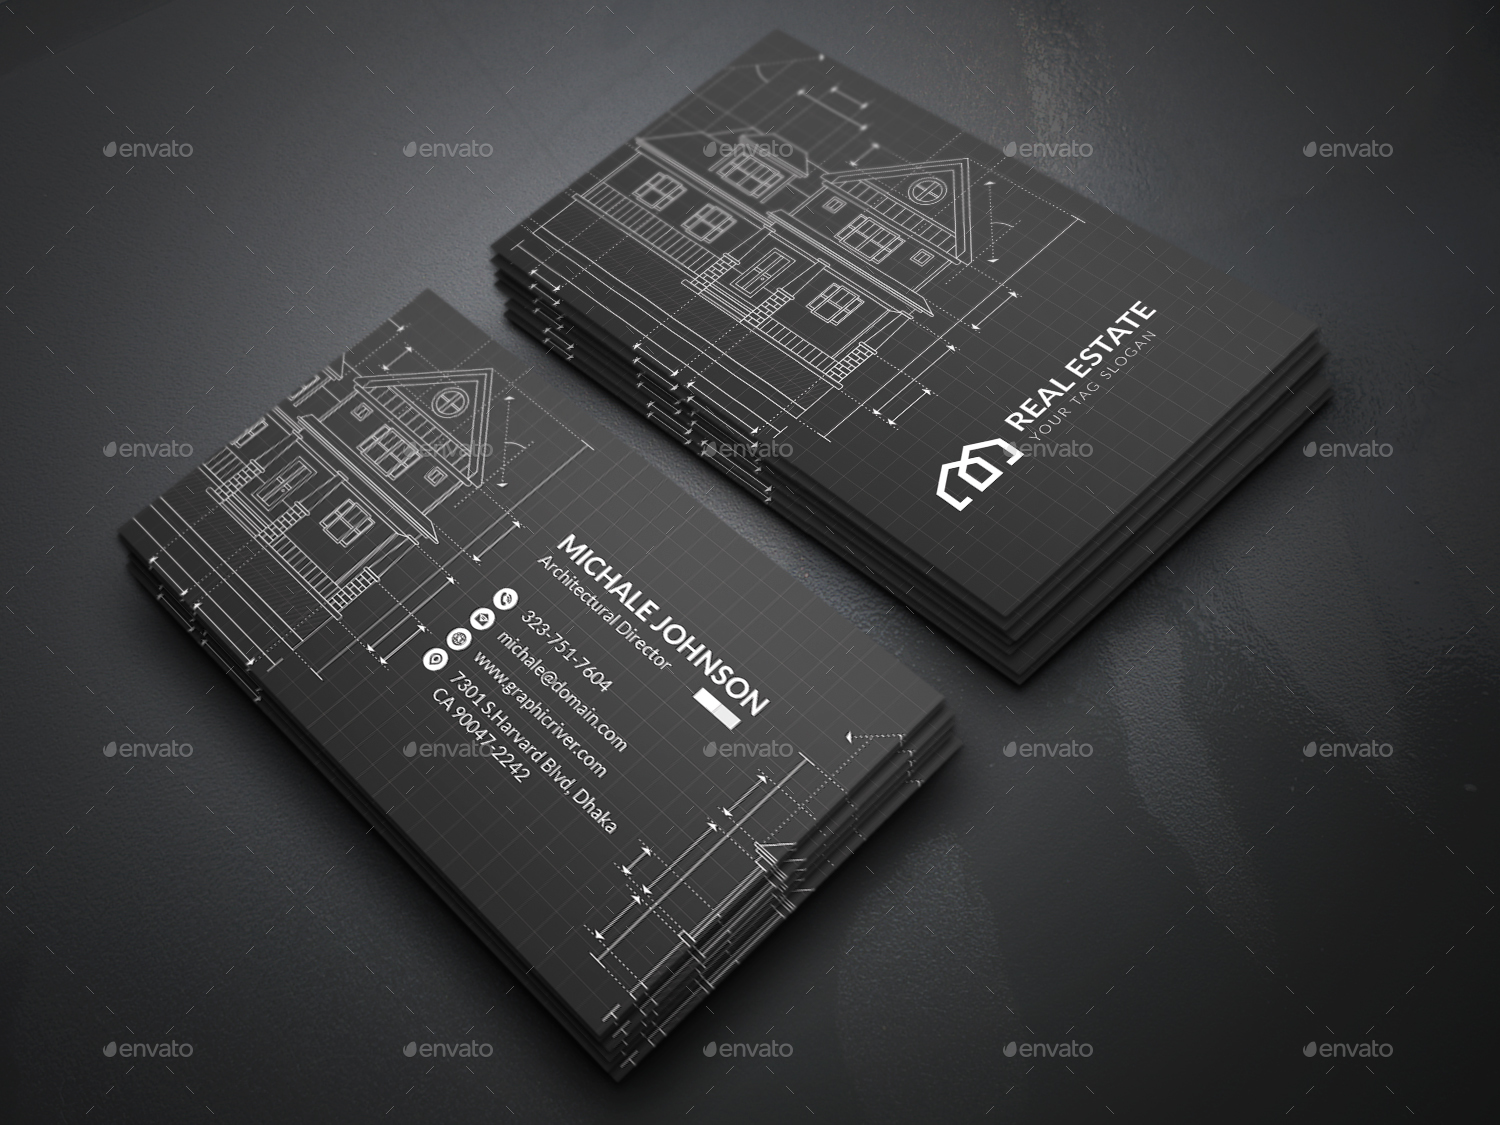 Architecture Business Card - Business Cards Print Templates   01_ScreenShot.jpg 02_ScreenShot.jpg 03_ScreenShot.jpg ...